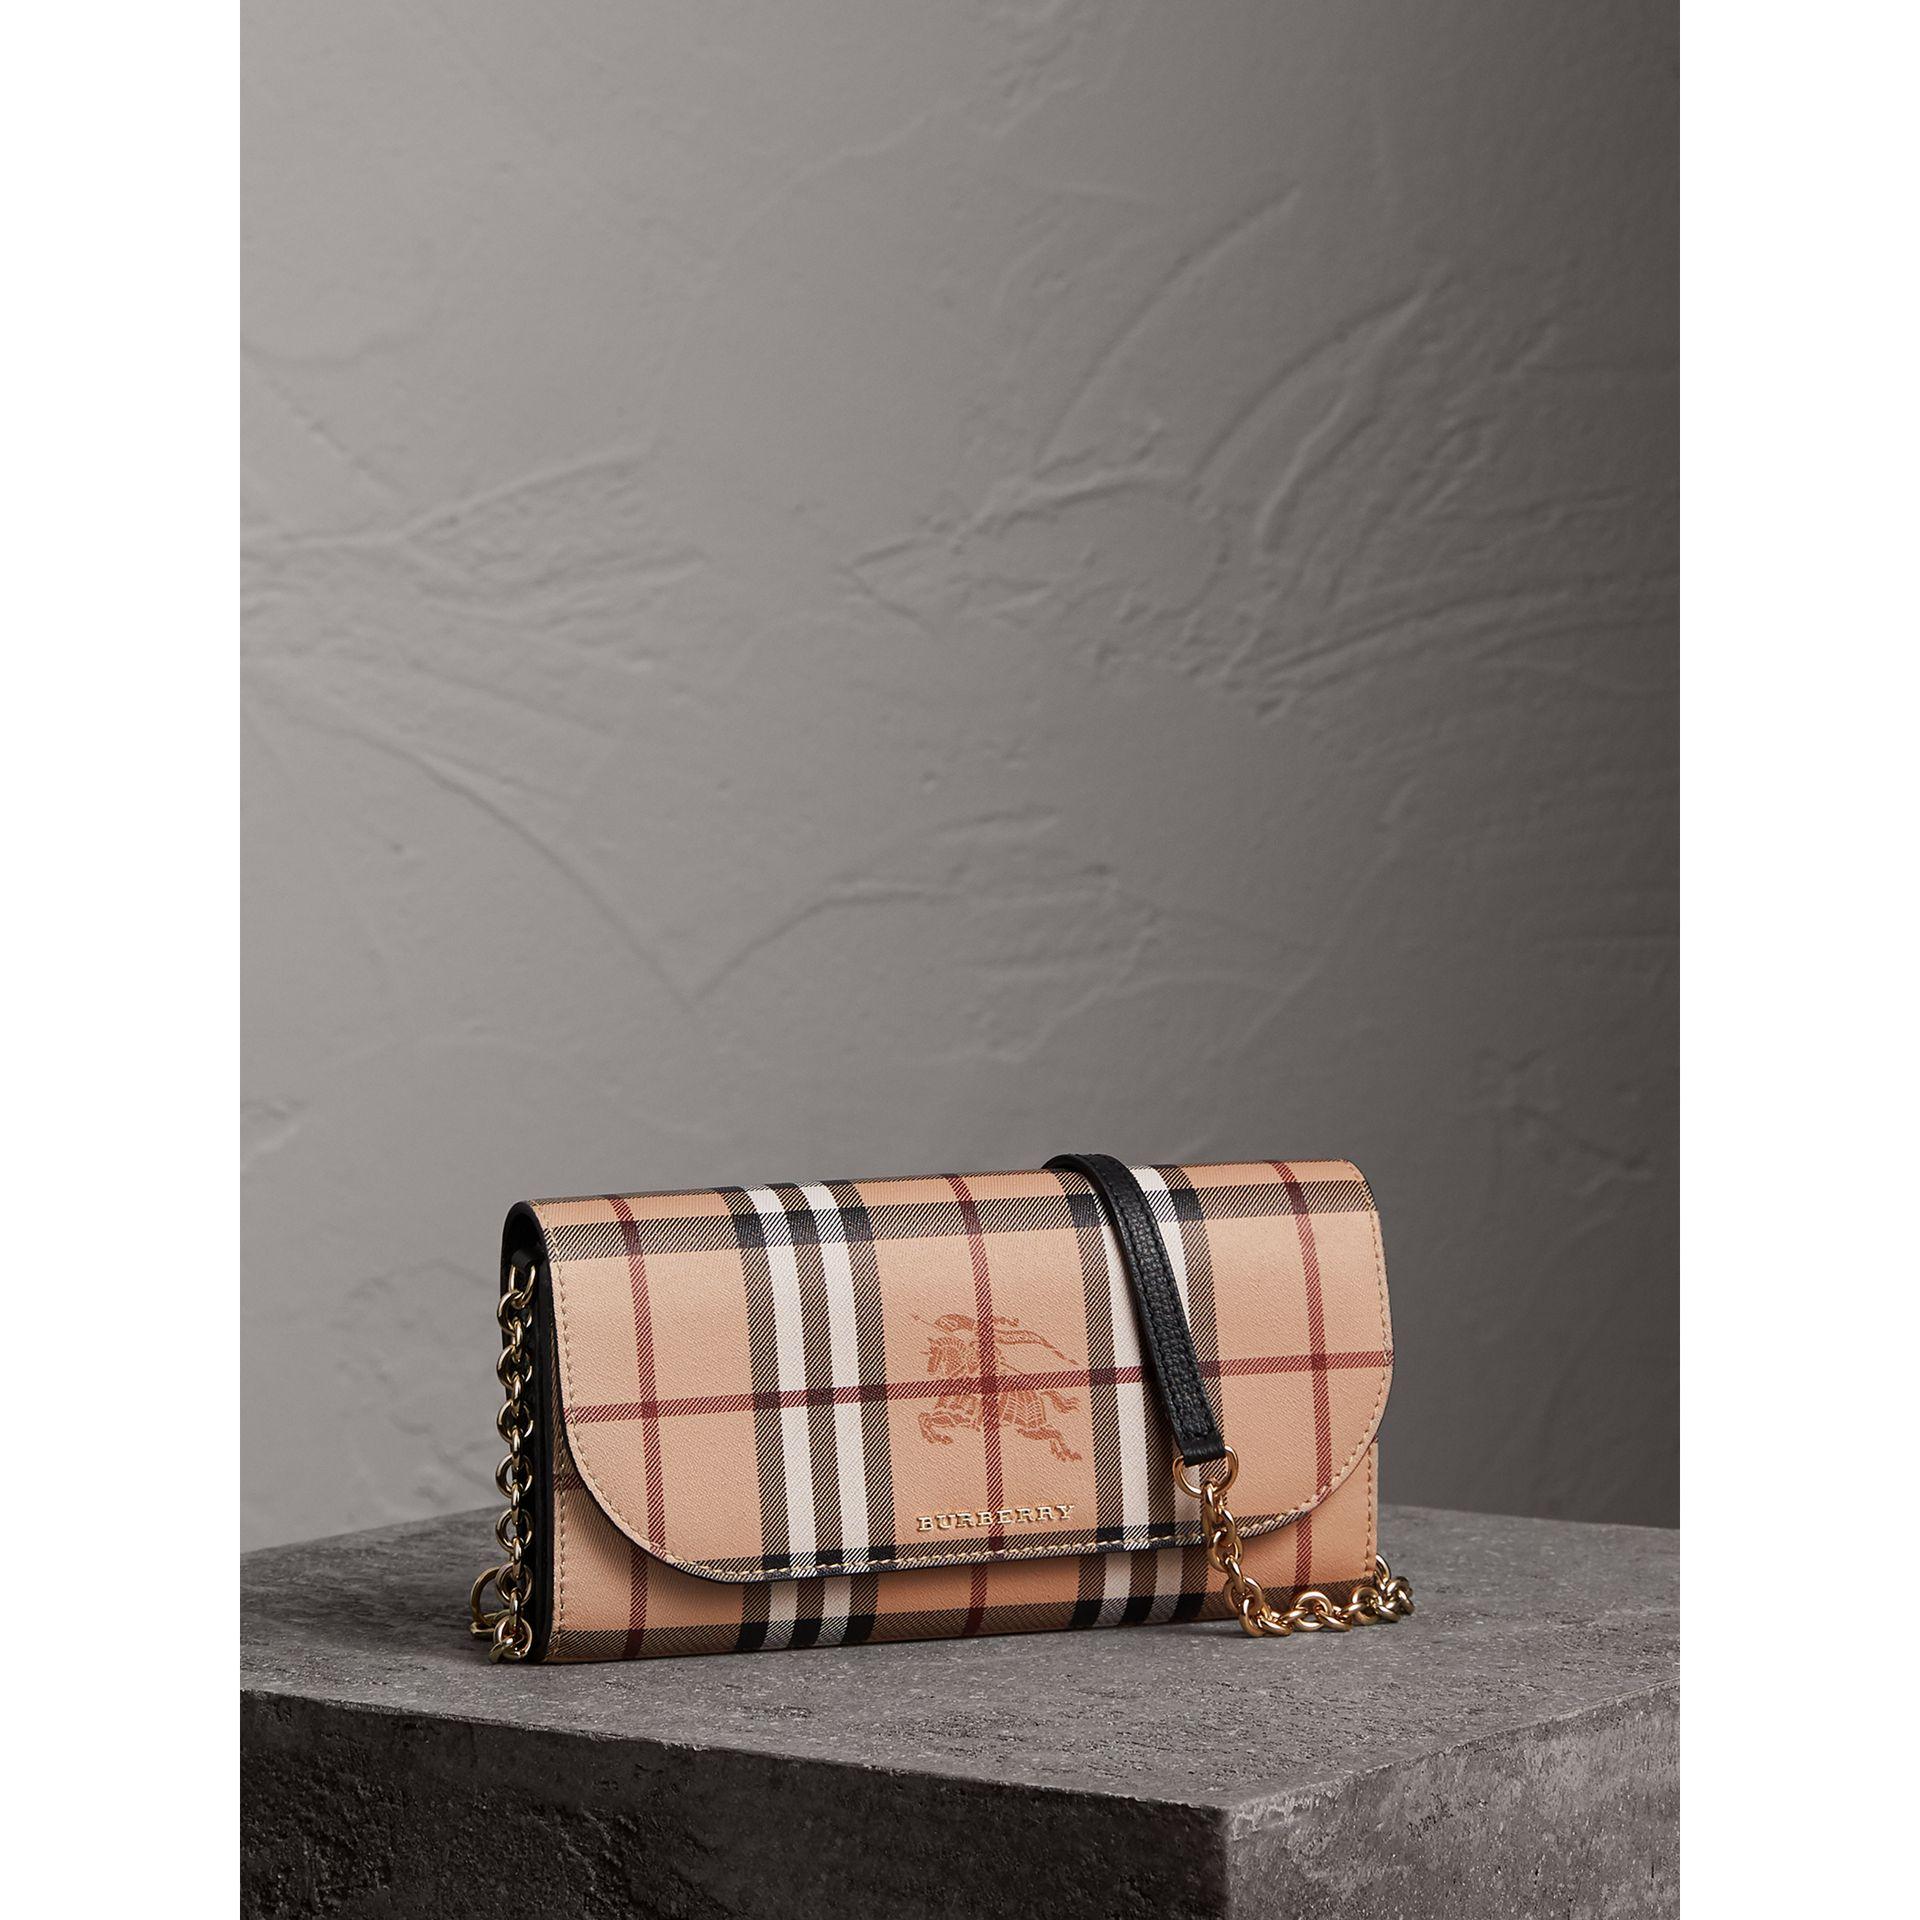 Leather Trim Haymarket Check Wallet with Chain in Black - Women | Burberry - gallery image 1